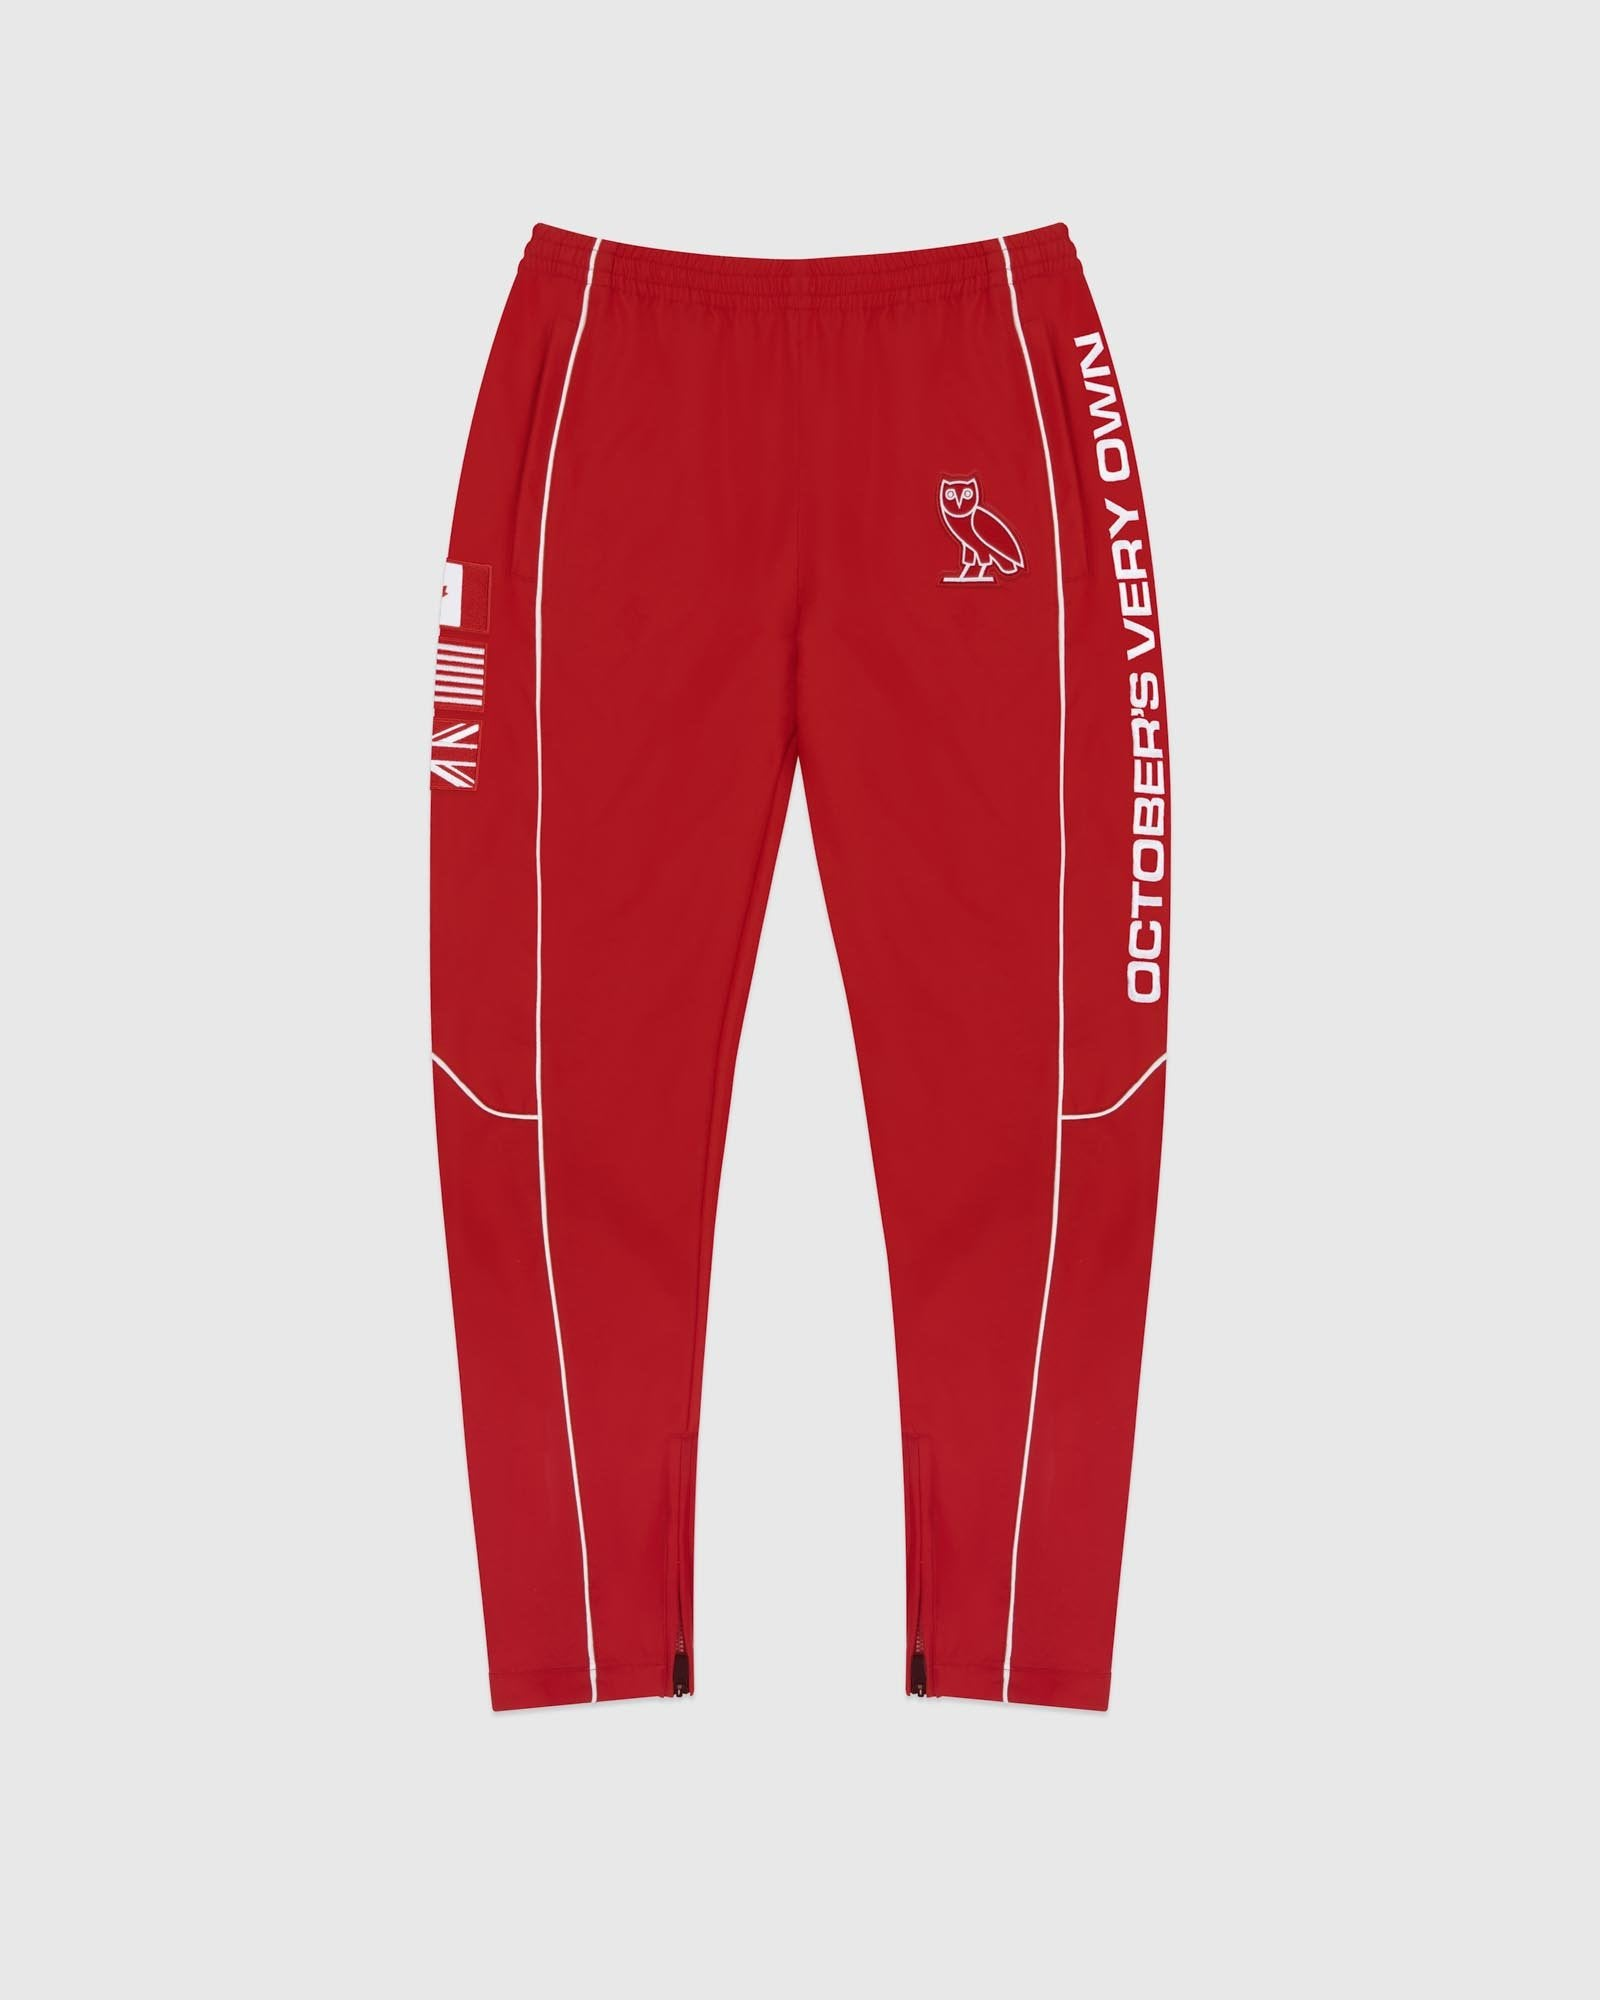 NYLON TEAM RACE PANT - RED IMAGE #1